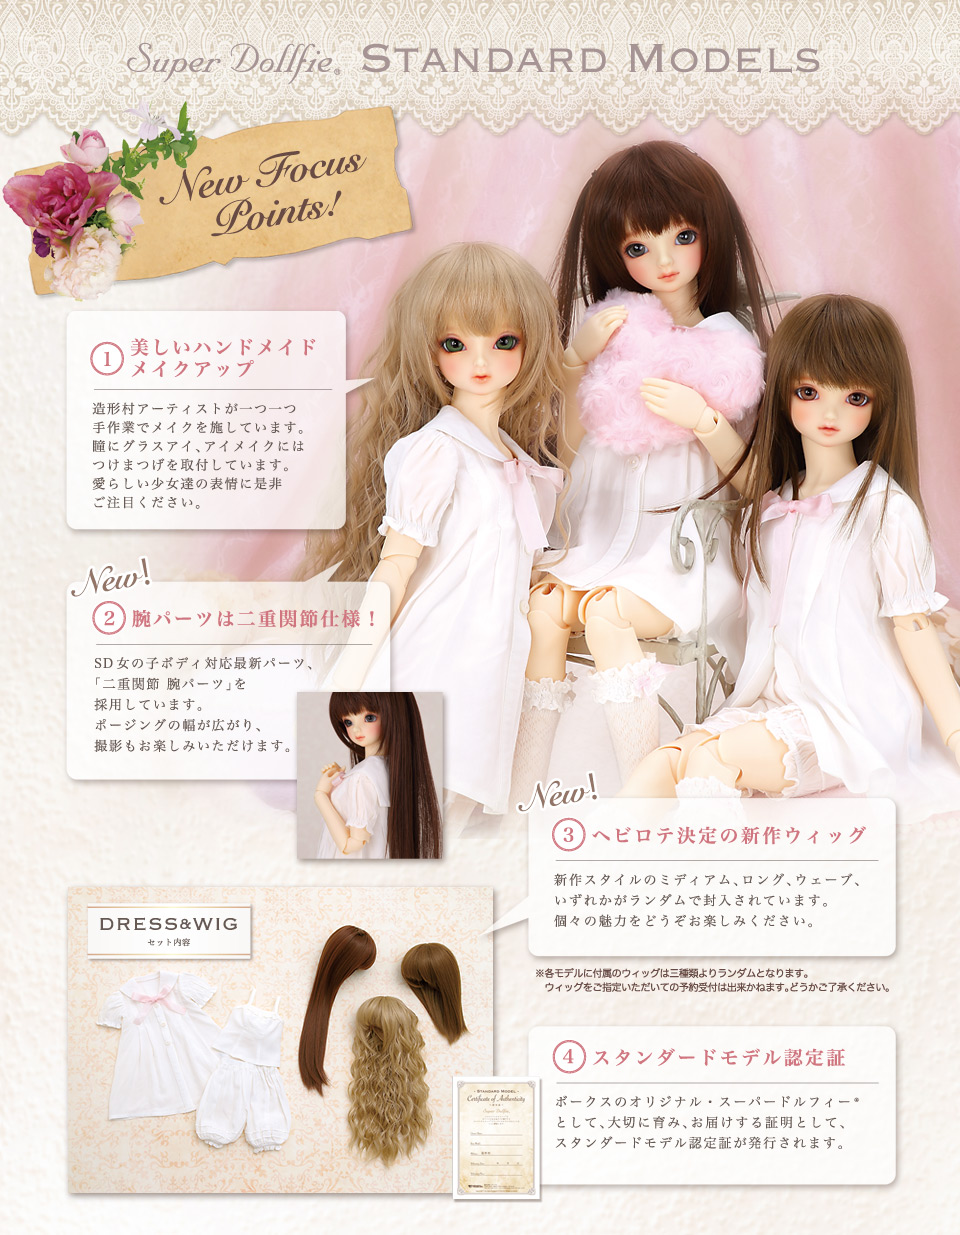 Super Dollfie Standard Models